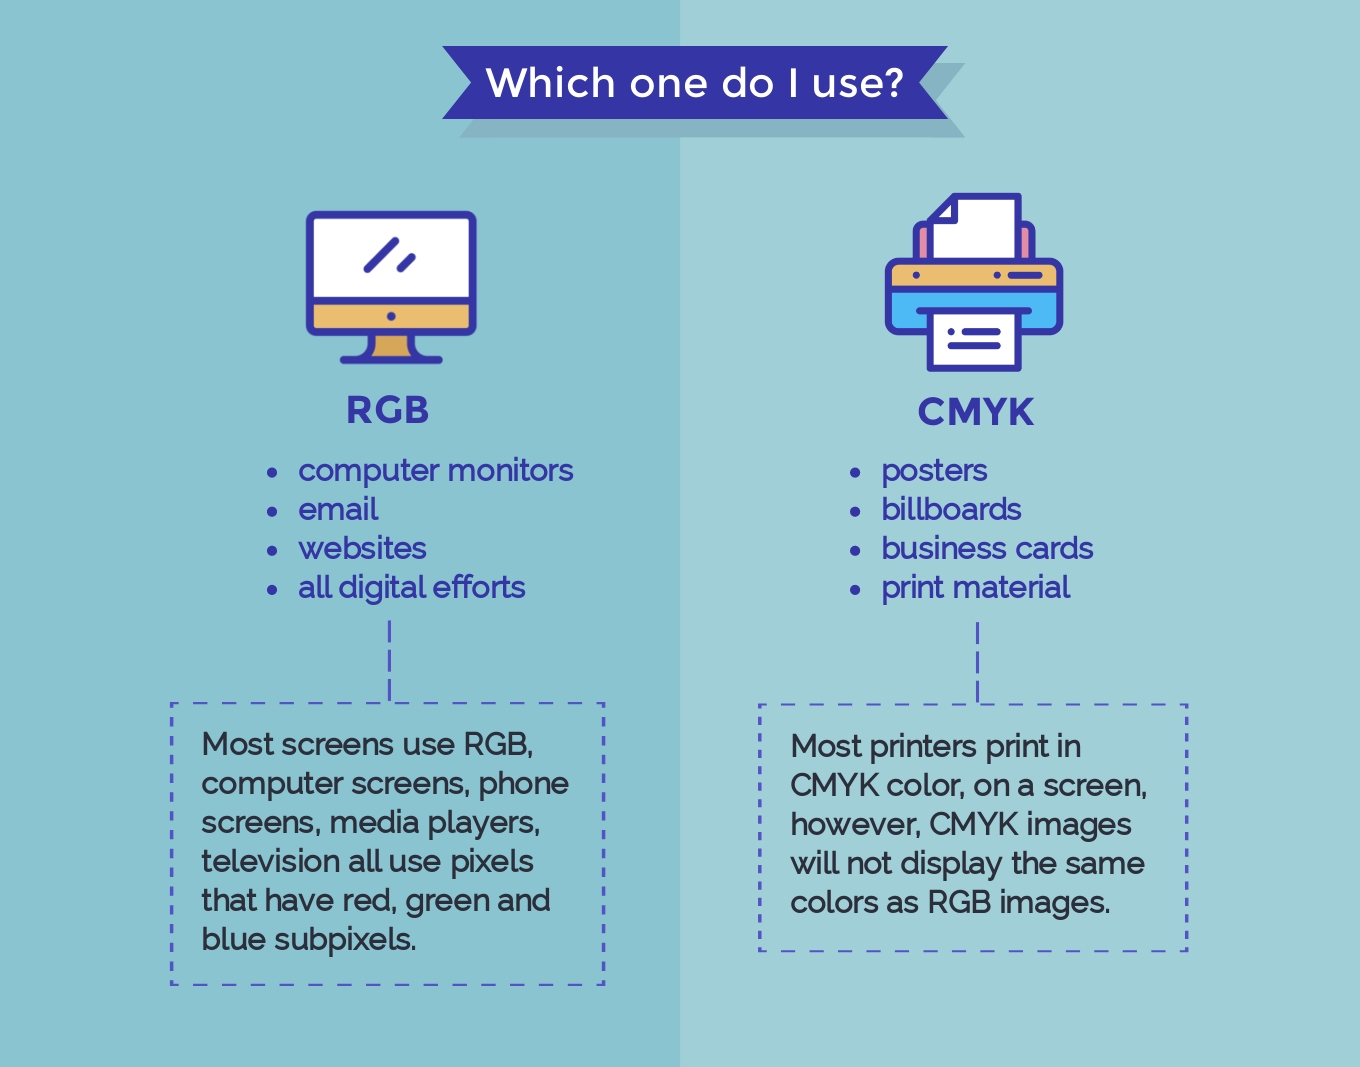 cmyk vs rgb which one do i use